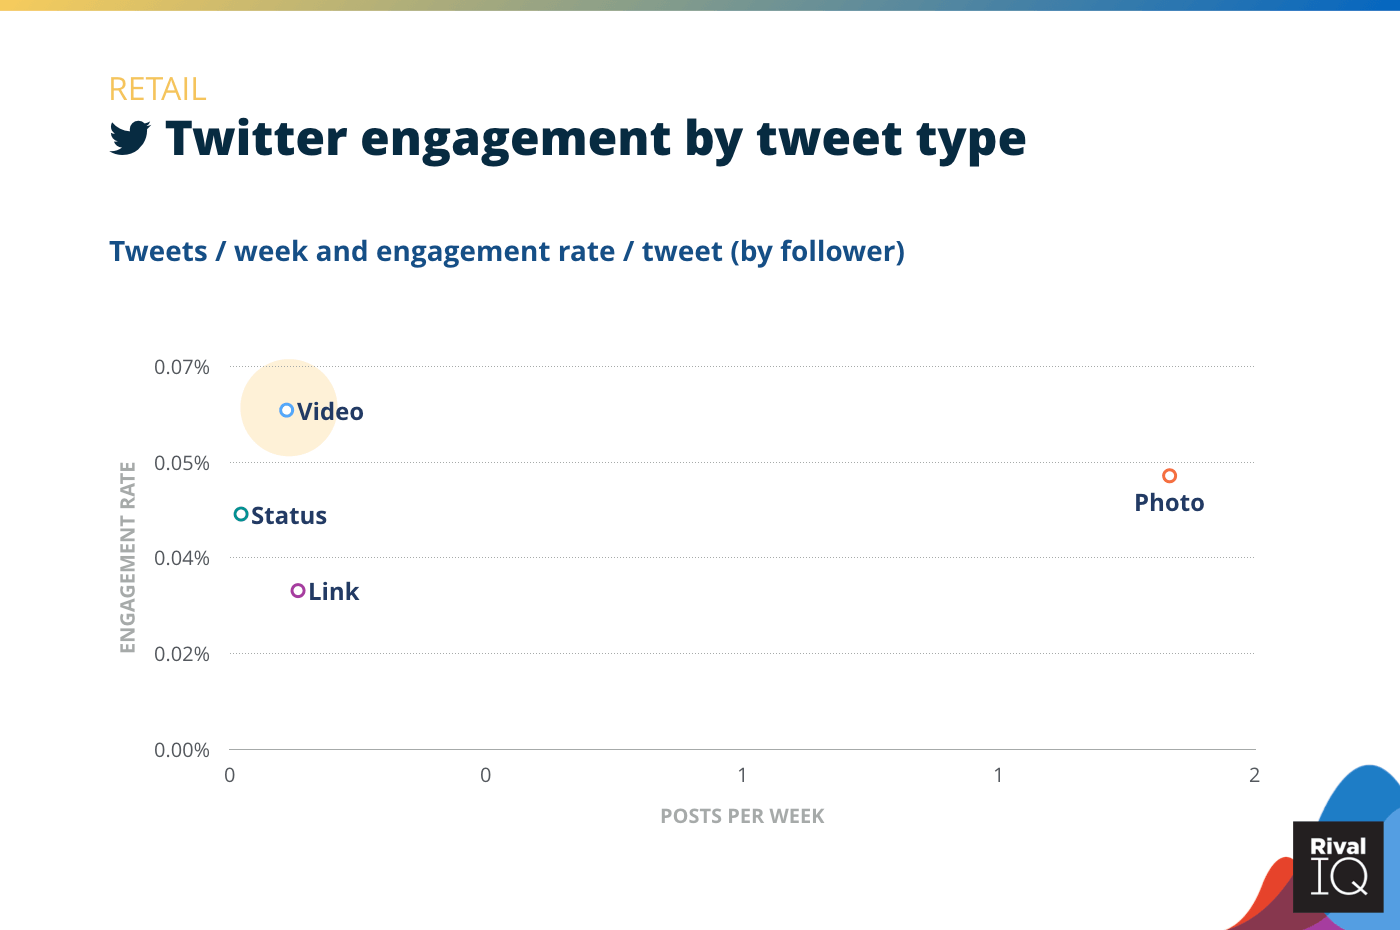 Chart of Twitter posts per week and engagement rate by tweet type, Retail